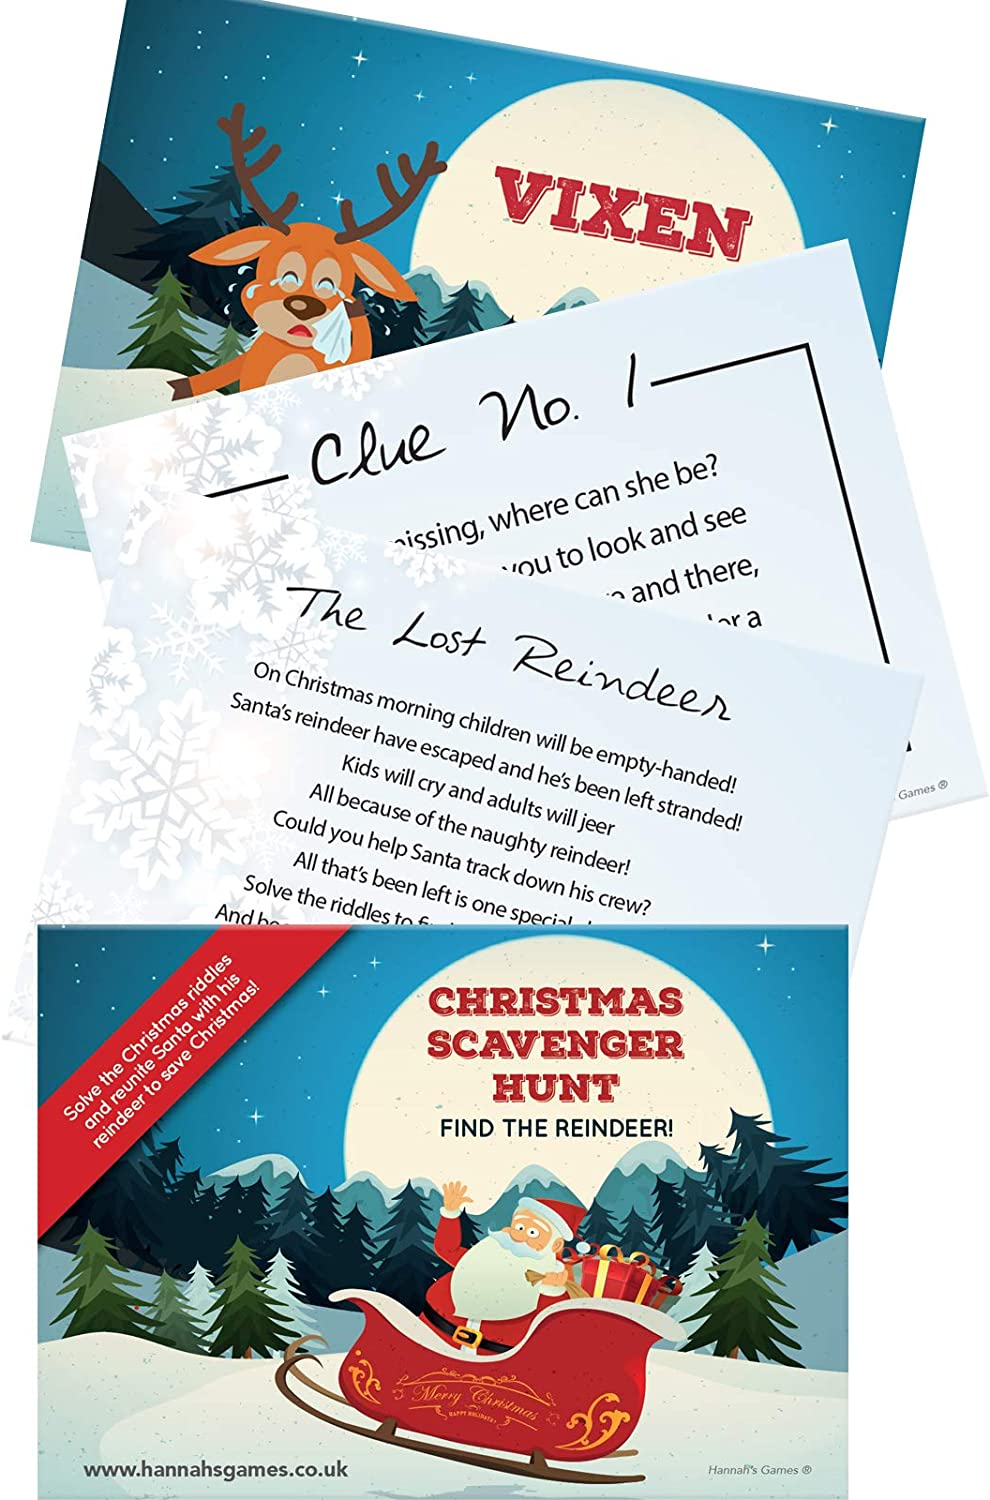 Christmas Treasure Hunt Game Christmas Games Scavenger Hunt Quest 10 Postcard Sized Clues For Family Christmas Fun Xmas Eve Box Elf On A Shelf Arrival Christmas Eve